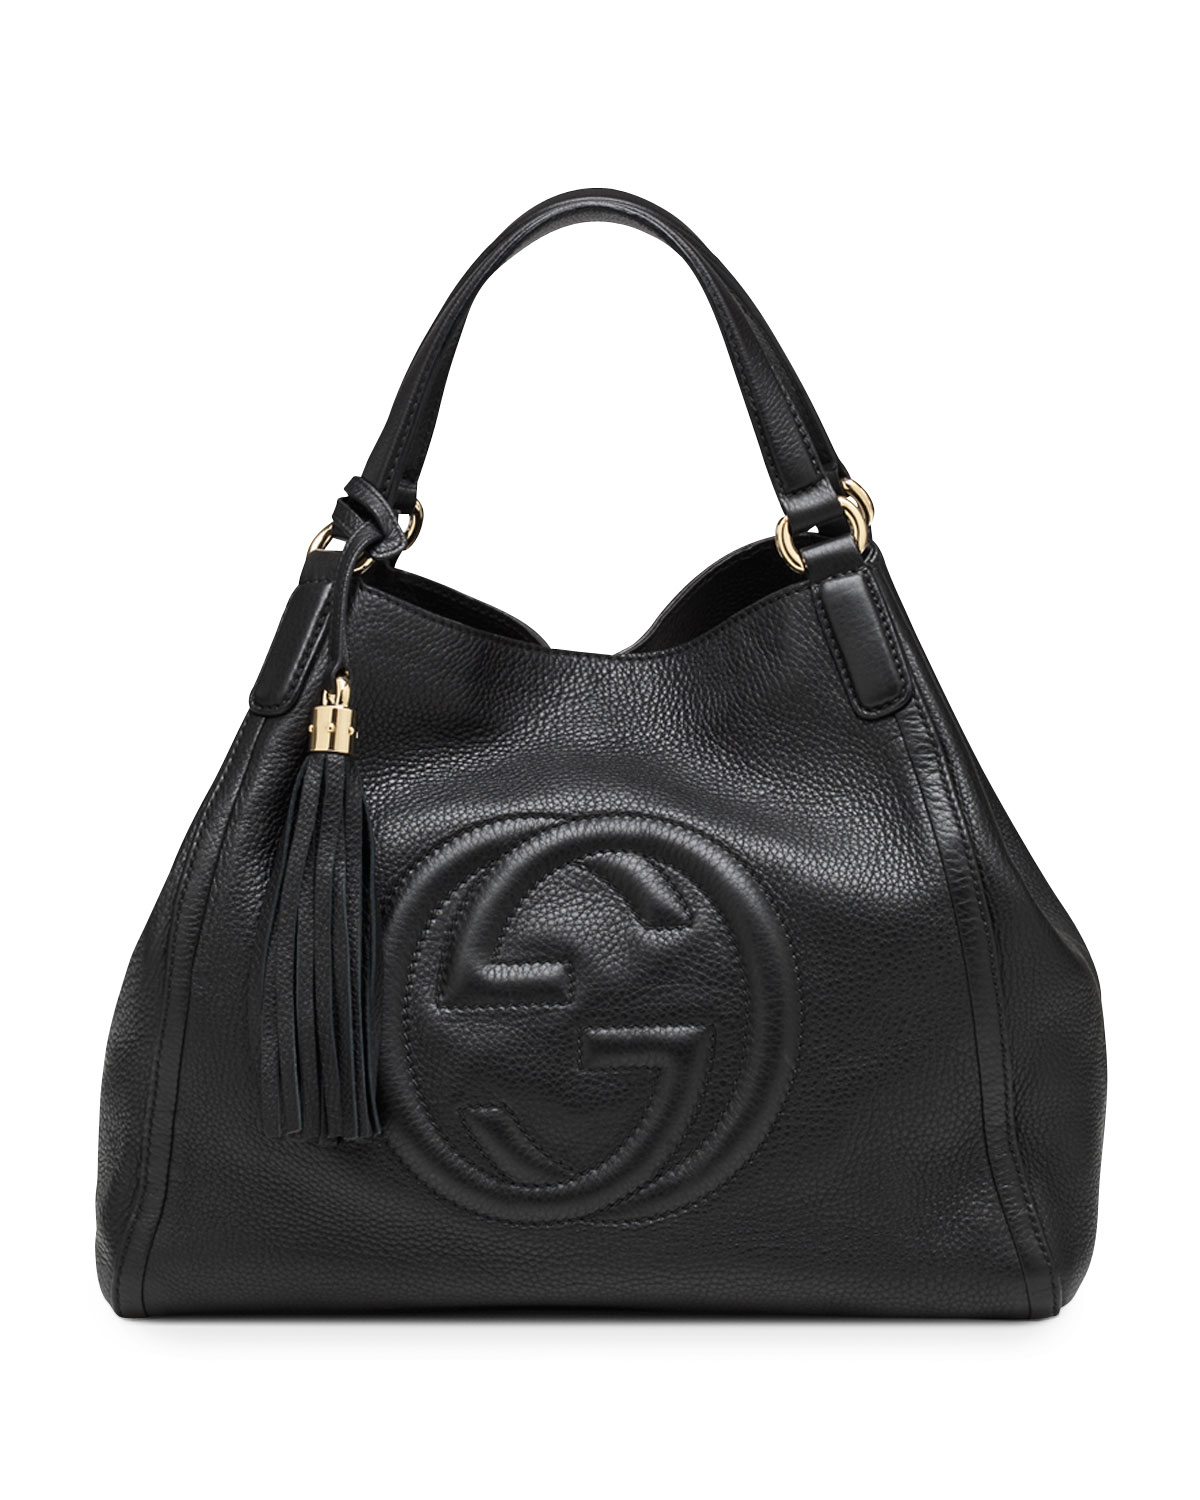 ed122f1fa74 Gucci Soho Leather Shoulder Bag